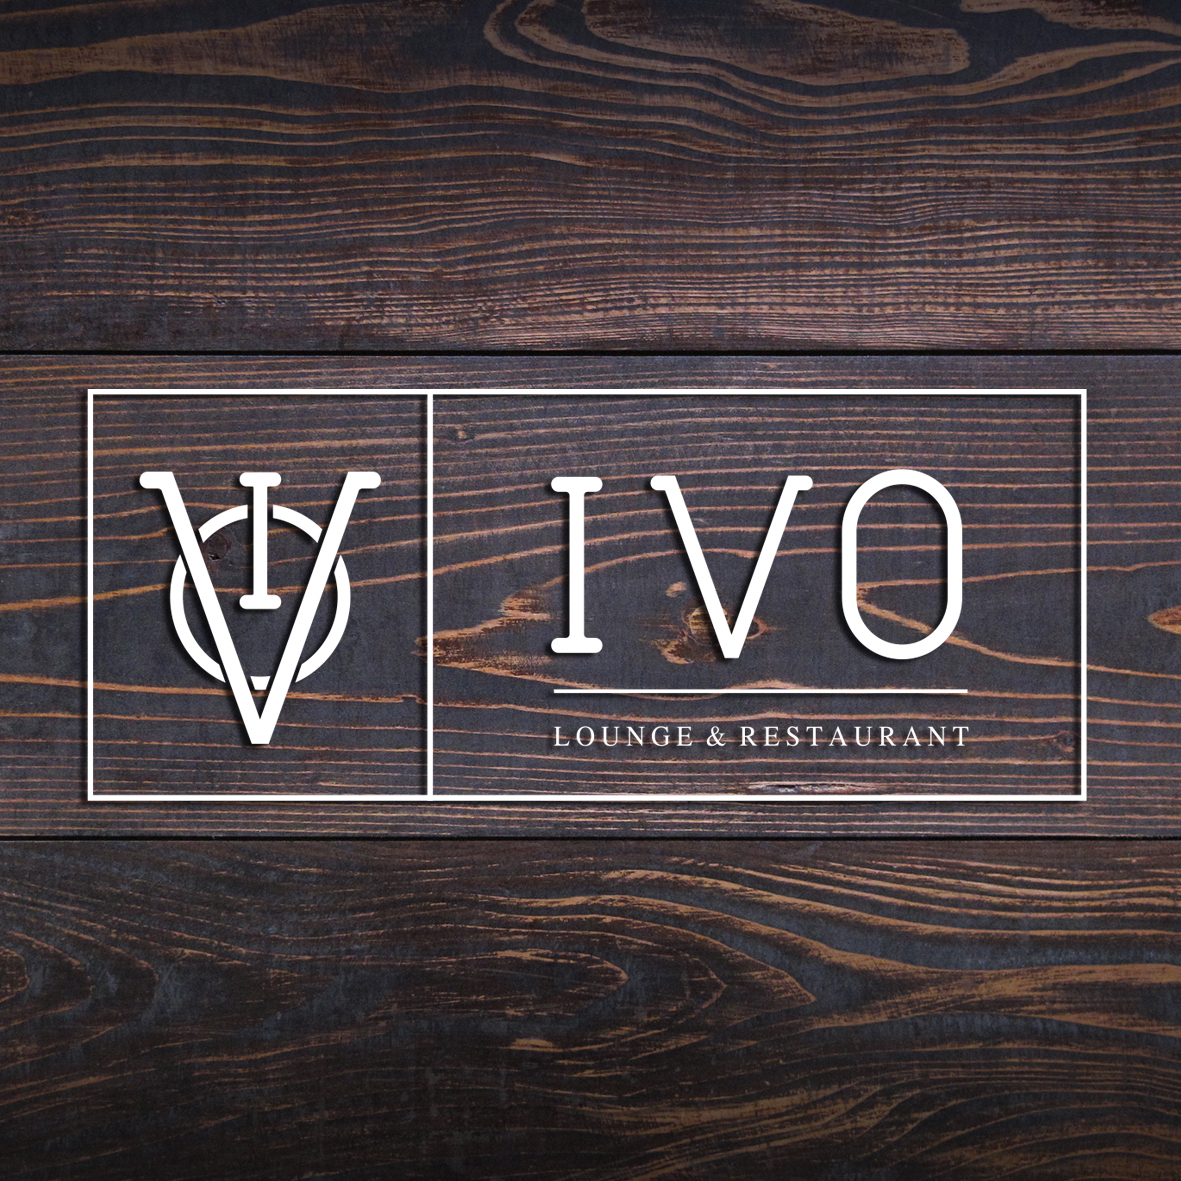 Ivo - Lounge & Restaurant